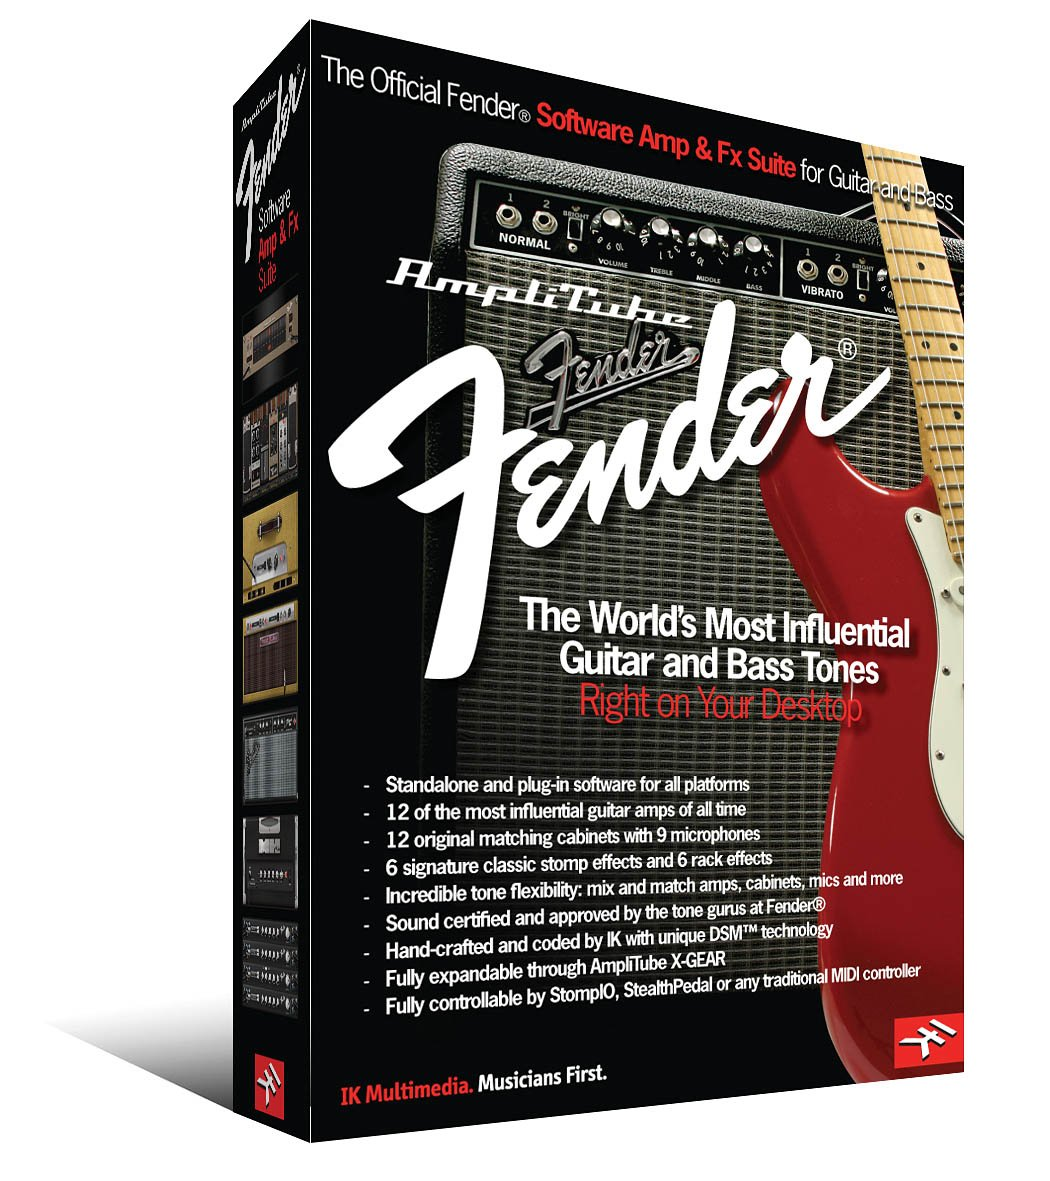 AMPLITUBE FENDER SOFTWARE    AMP & FX SUITE FOR           GUITAR AND BASS